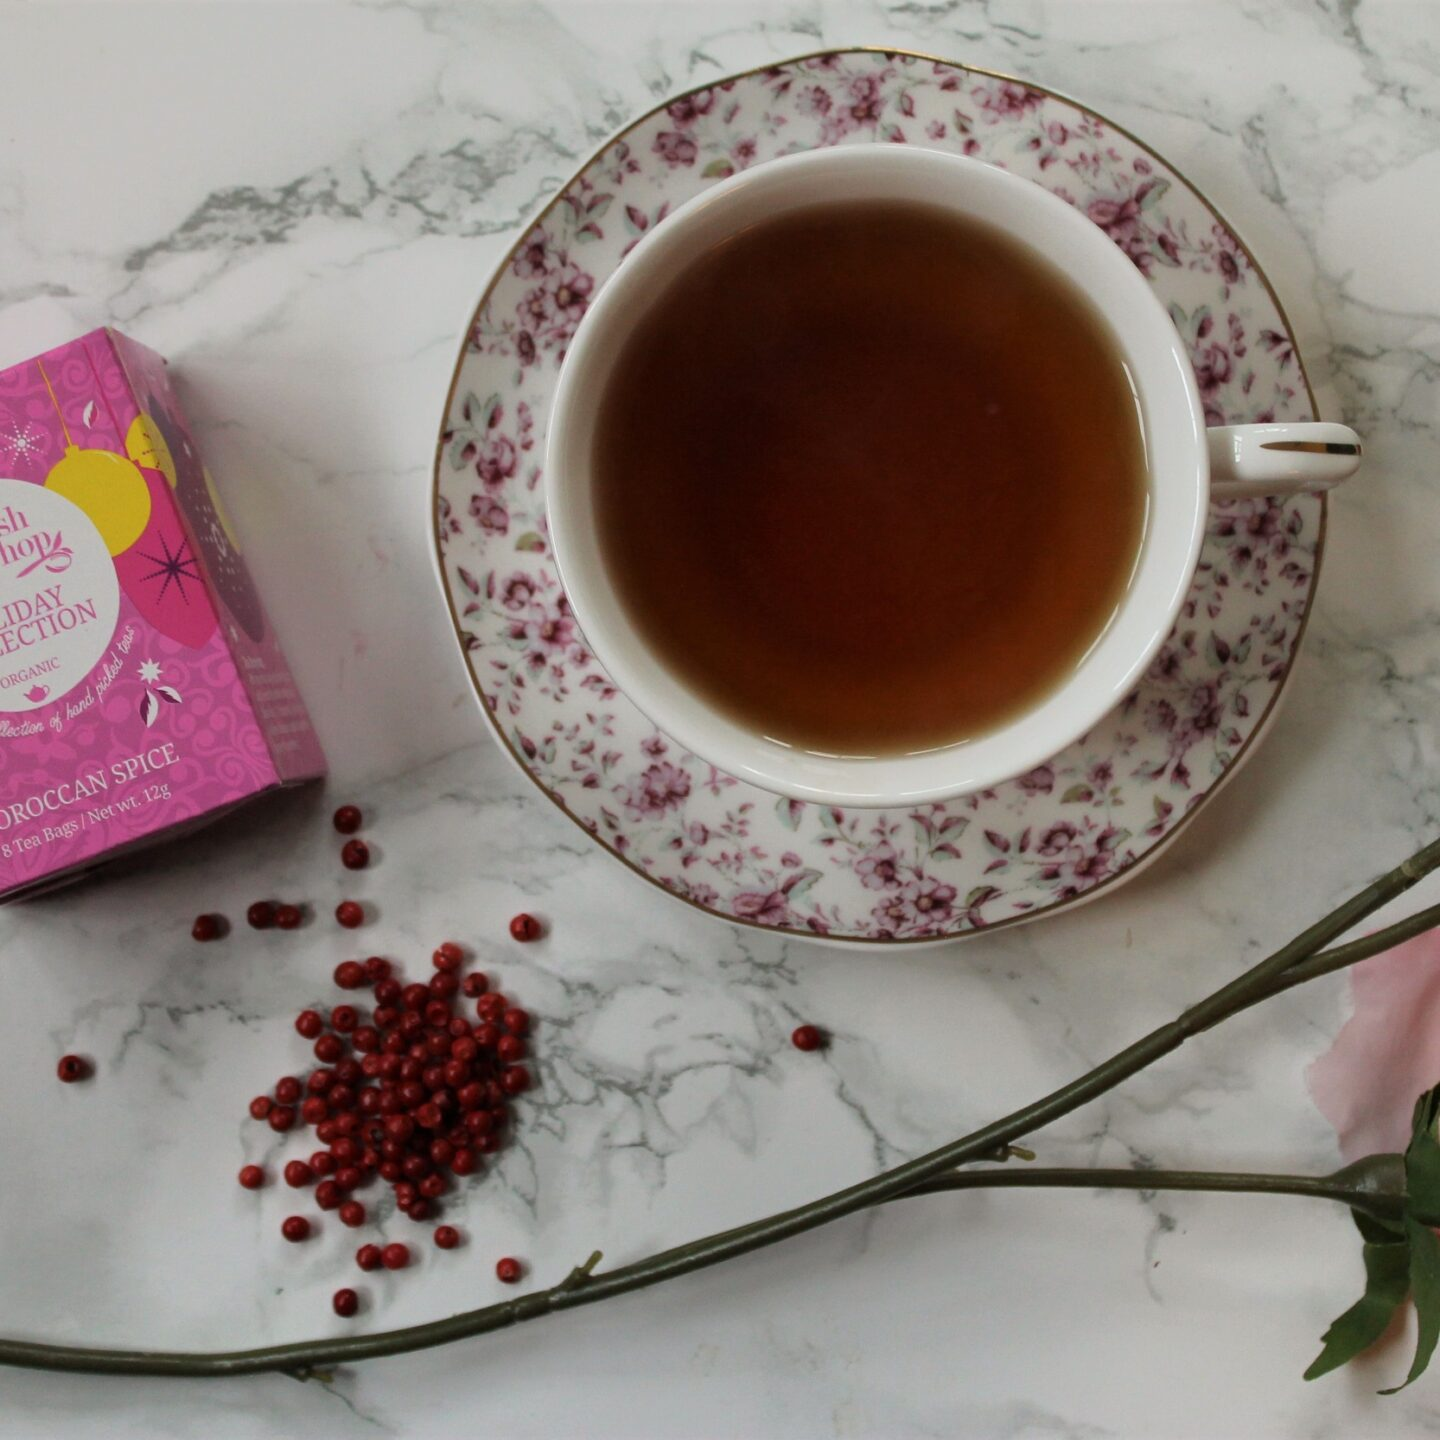 English Tea Shop Moroccan Spice Herbal Tea Review